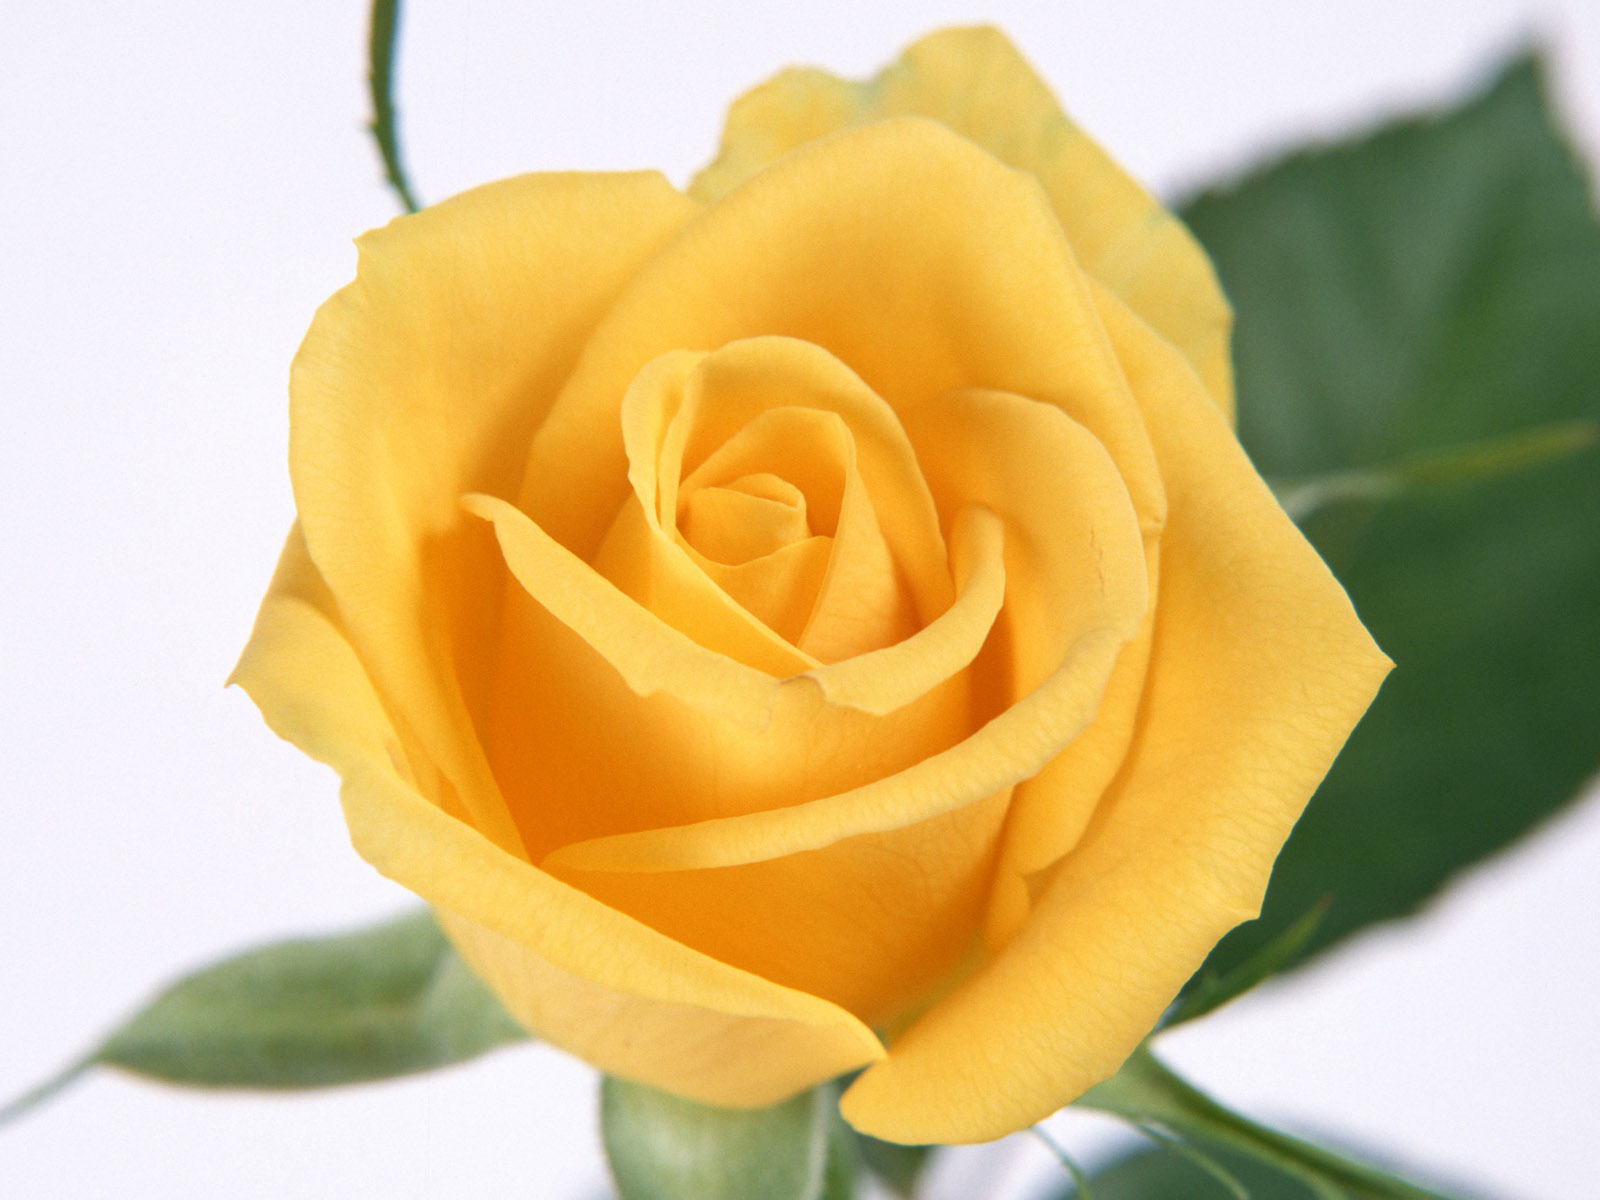 http://3.bp.blogspot.com/-yfcHONTCjpA/TfmNI8GE36I/AAAAAAAAA1c/BHIdiXxs9dw/s1600/The-best-top-desktop-roses-wallpapers-hd-rose-wallpaper-5-yellow-rose.jpg